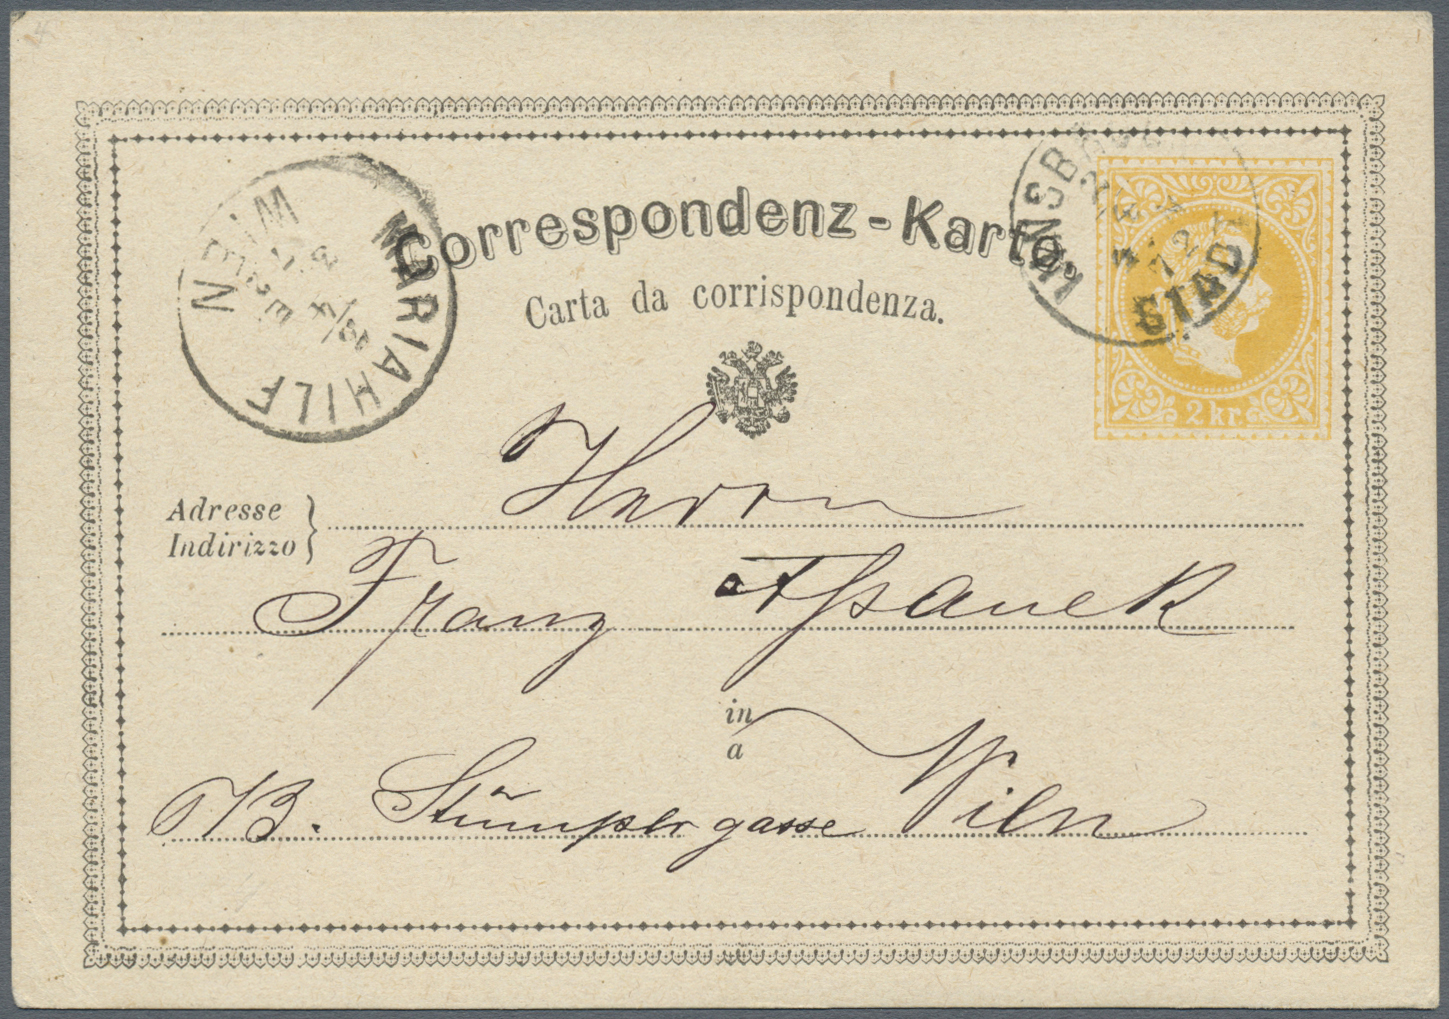 Lot 18226 - österreich - ganzsachen  -  Auktionshaus Christoph Gärtner GmbH & Co. KG Single lots Philately Overseas & Europe. Auction #39 Day 4